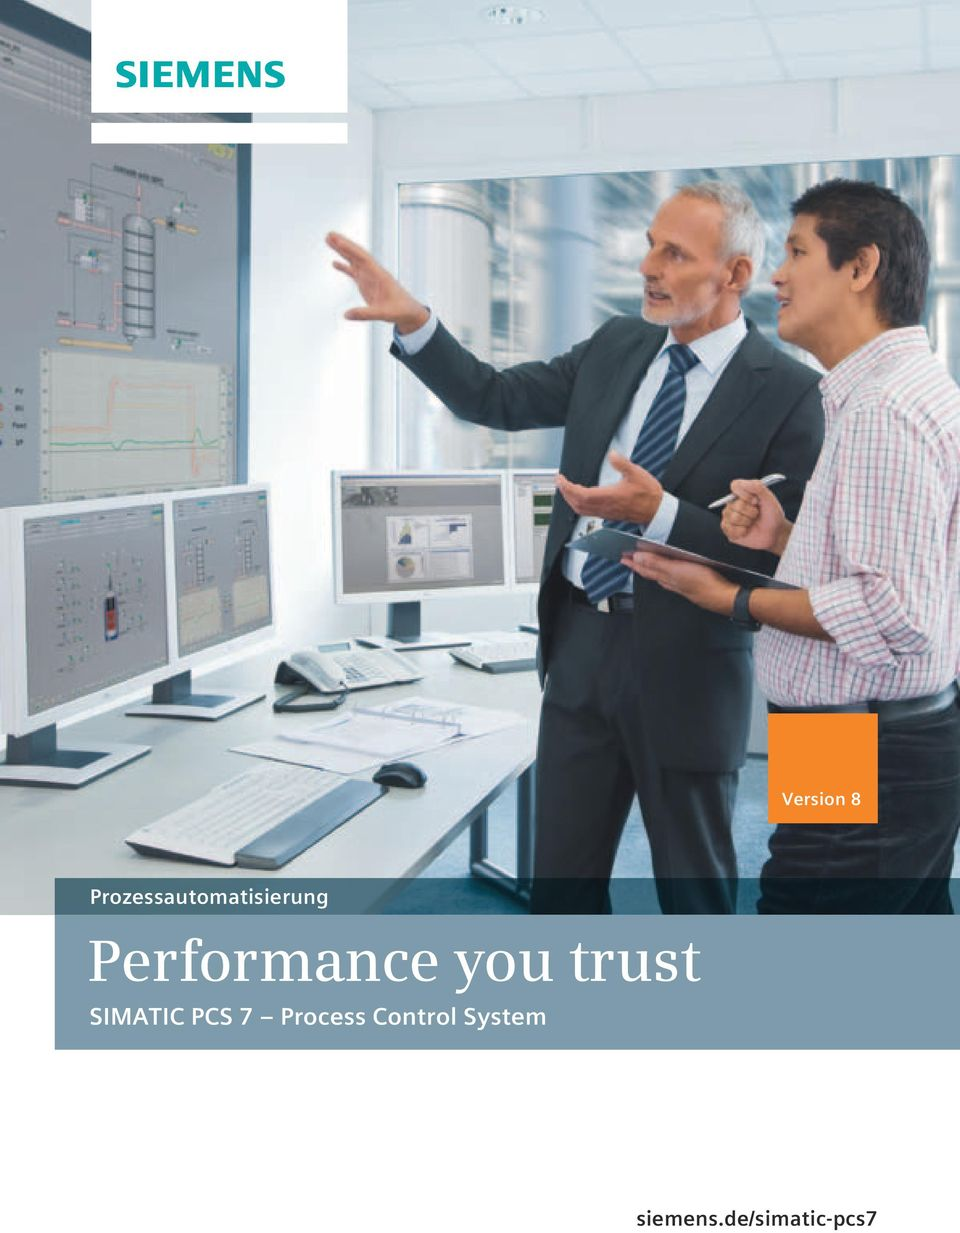 Performance you trust